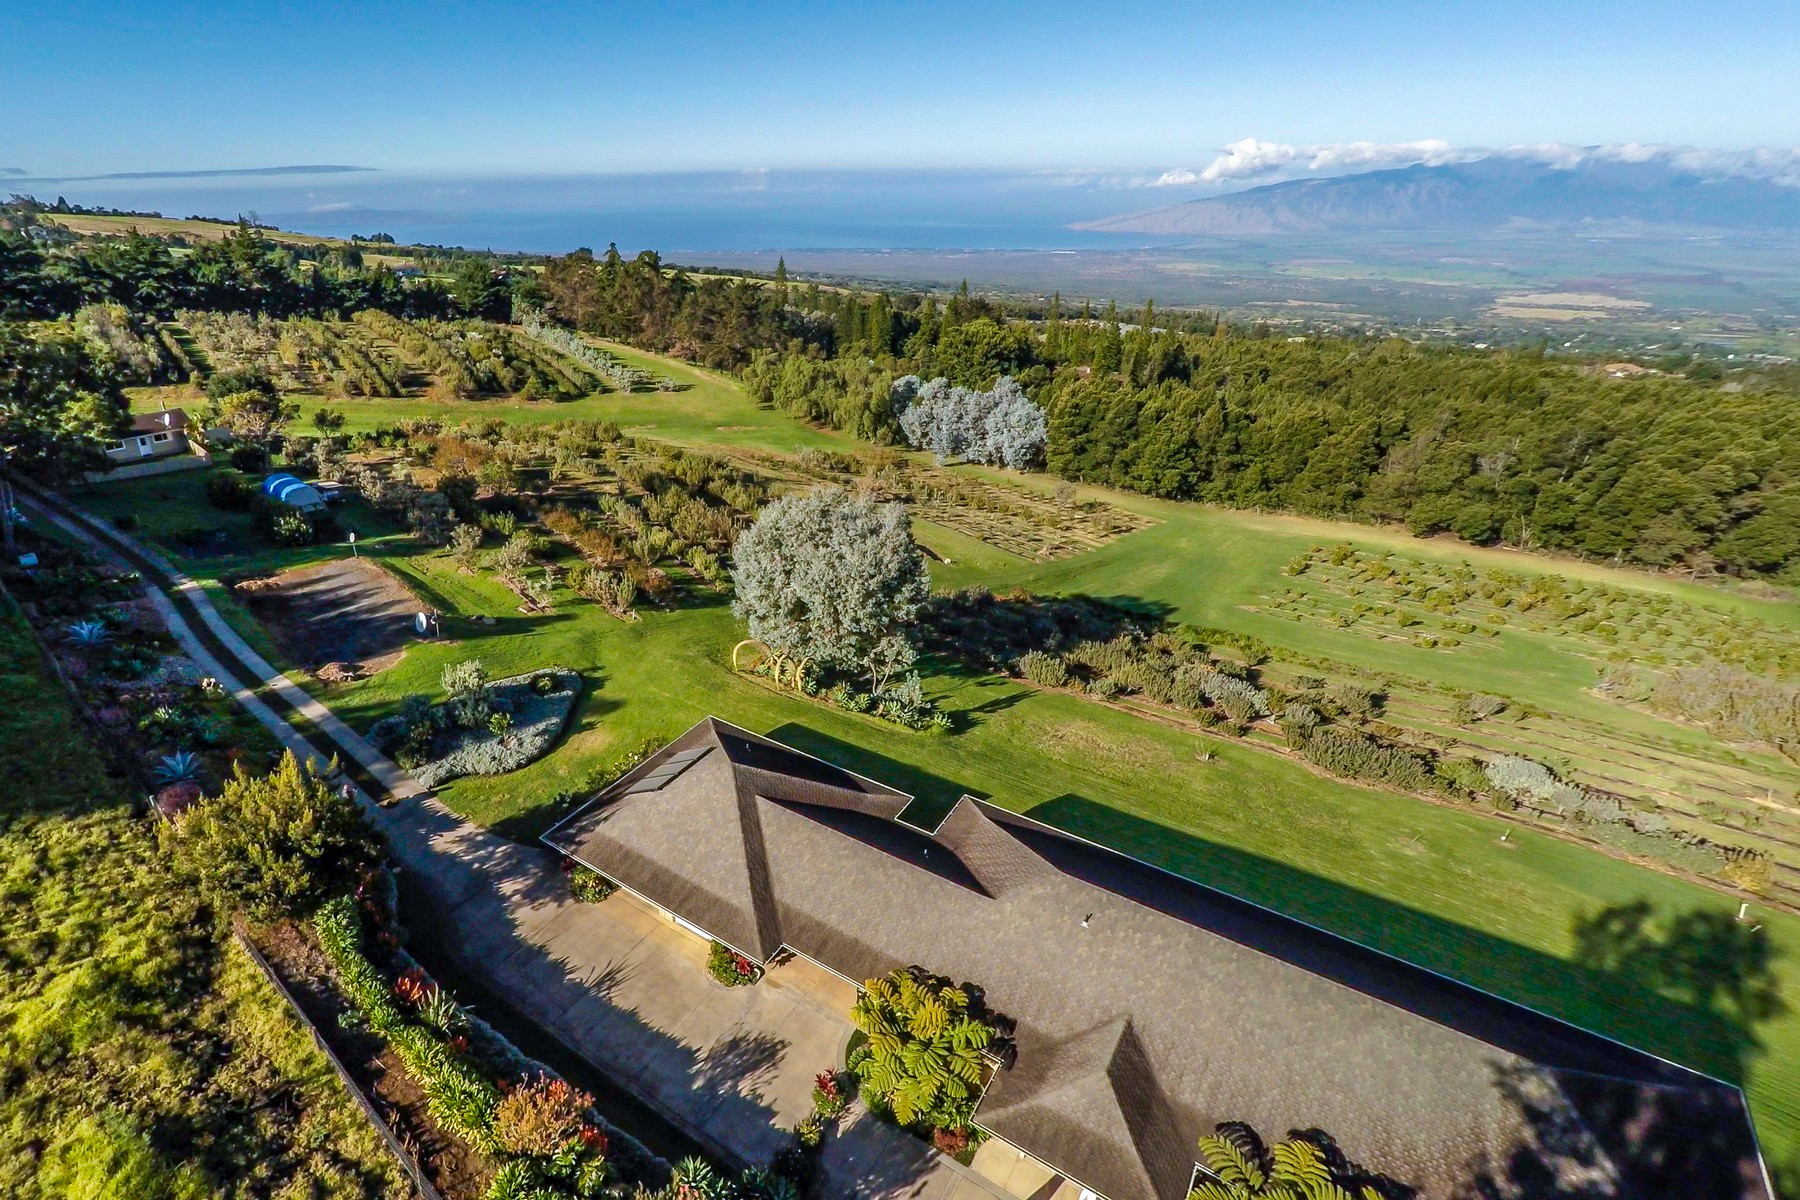 Property For Sale at Live Among Kings In Pastoral Kula, Maui